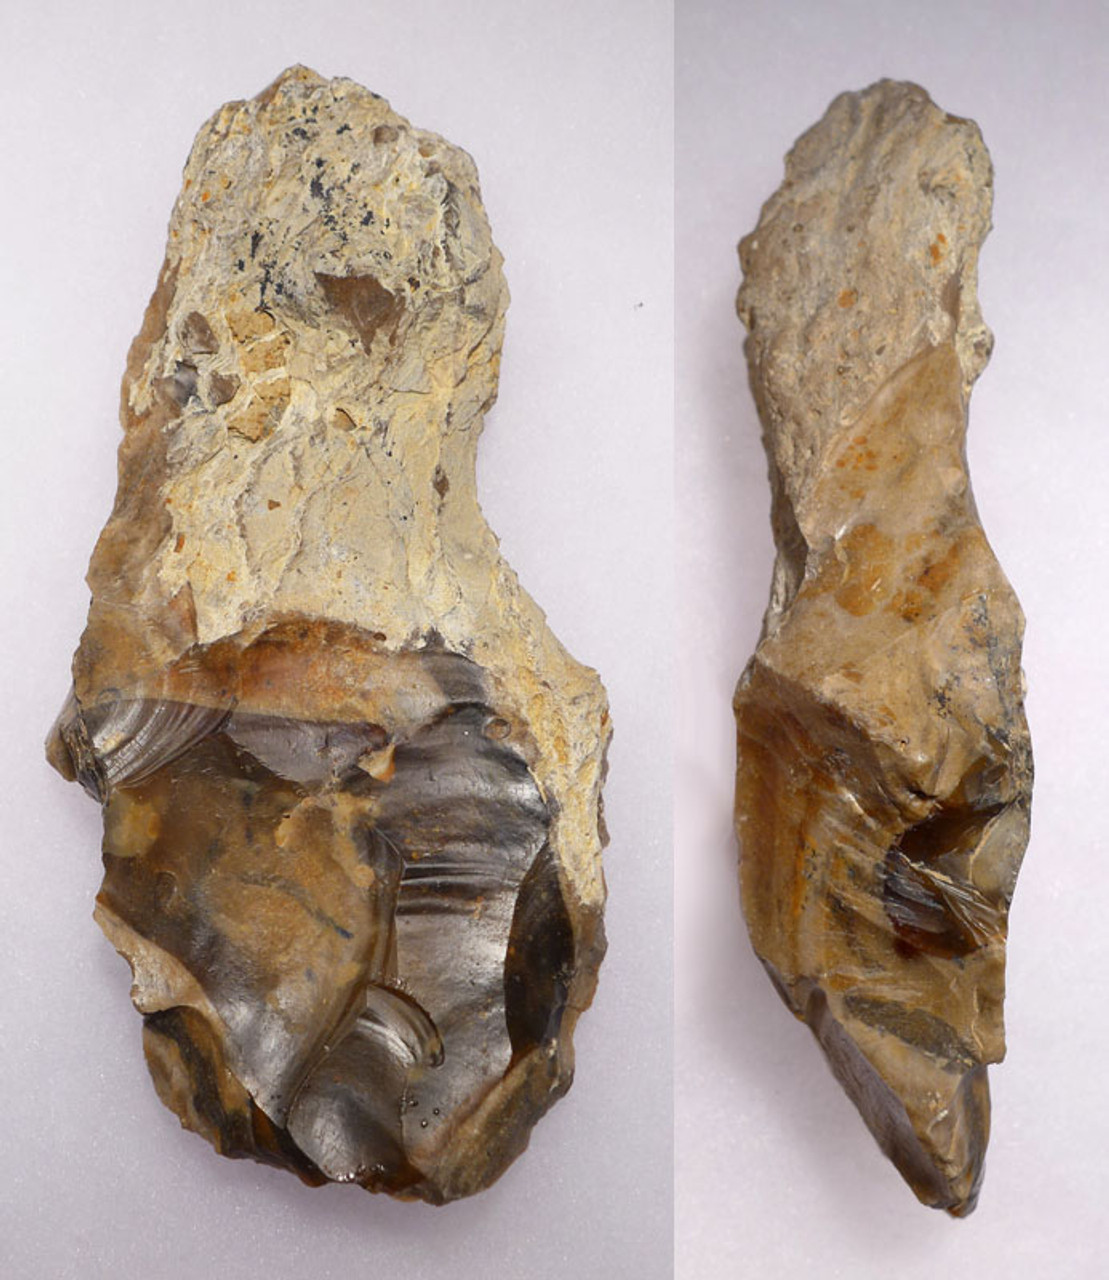 ACH205 - ULTRA RARE ACHEULIAN LOWER PALEOLITHIC HAND AXE FROM FAMOUS SITE IN ENGLAND